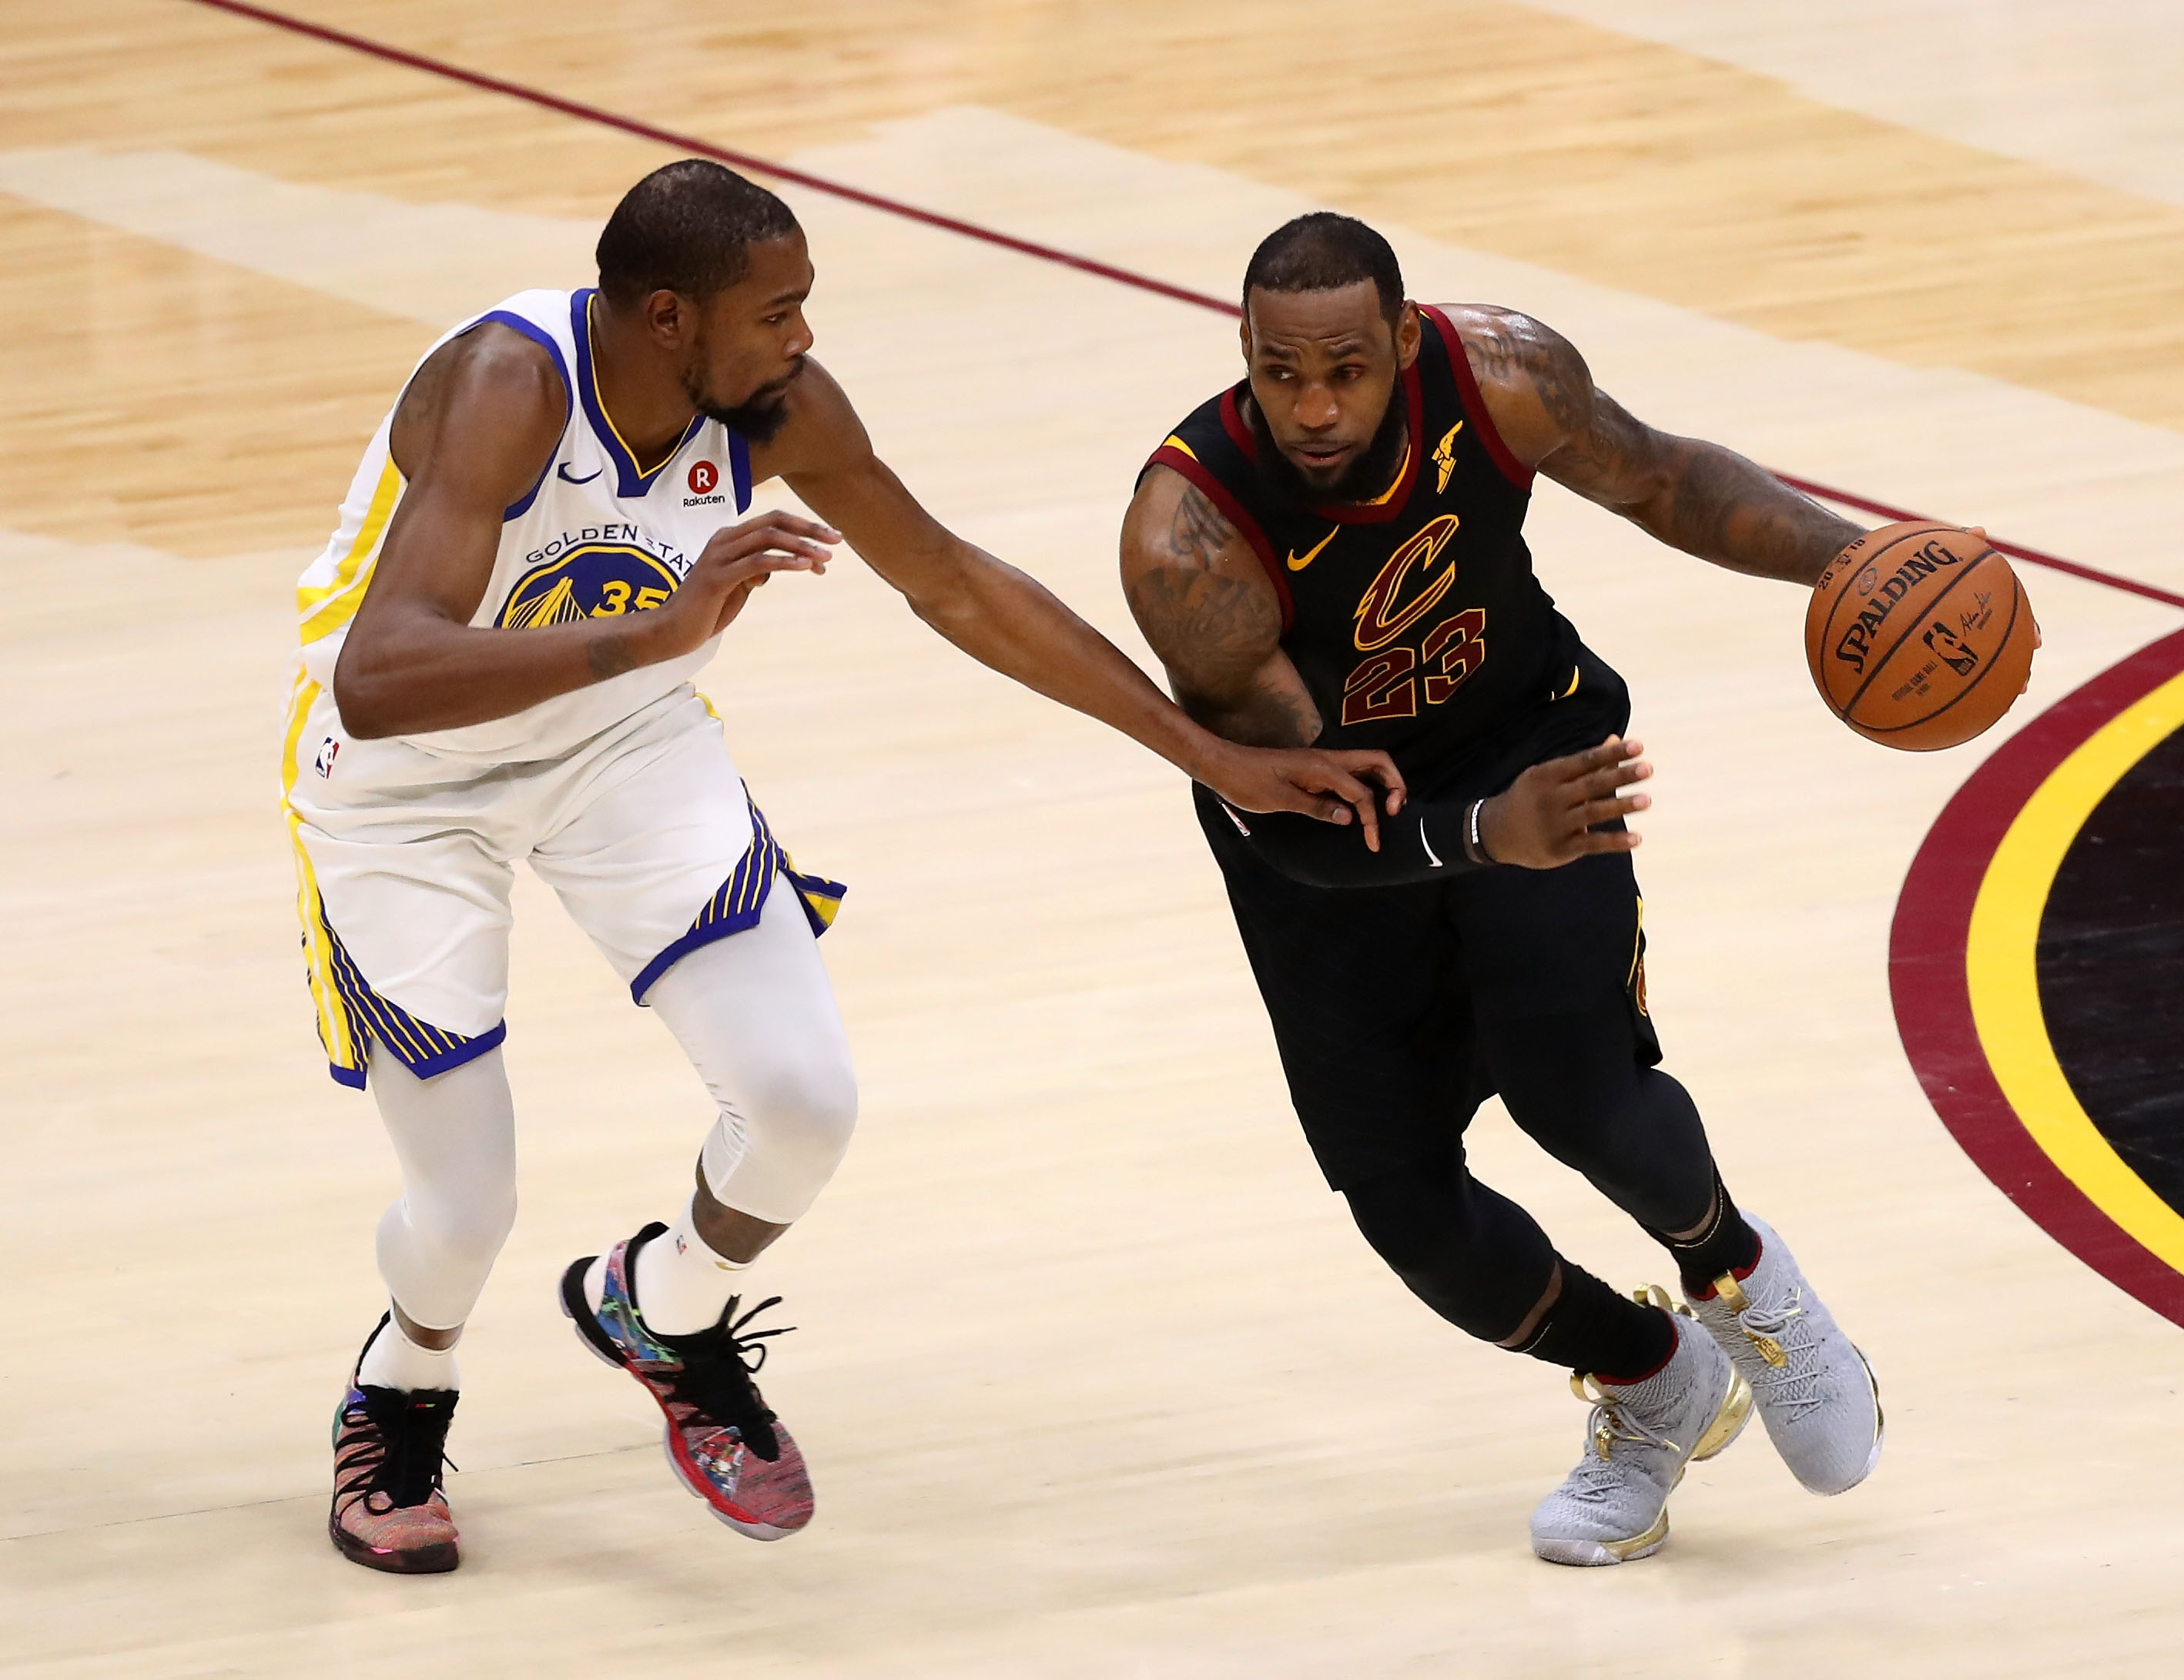 LeBron James' future with Cleveland Cavaliers in doubt after NBA Finals loss